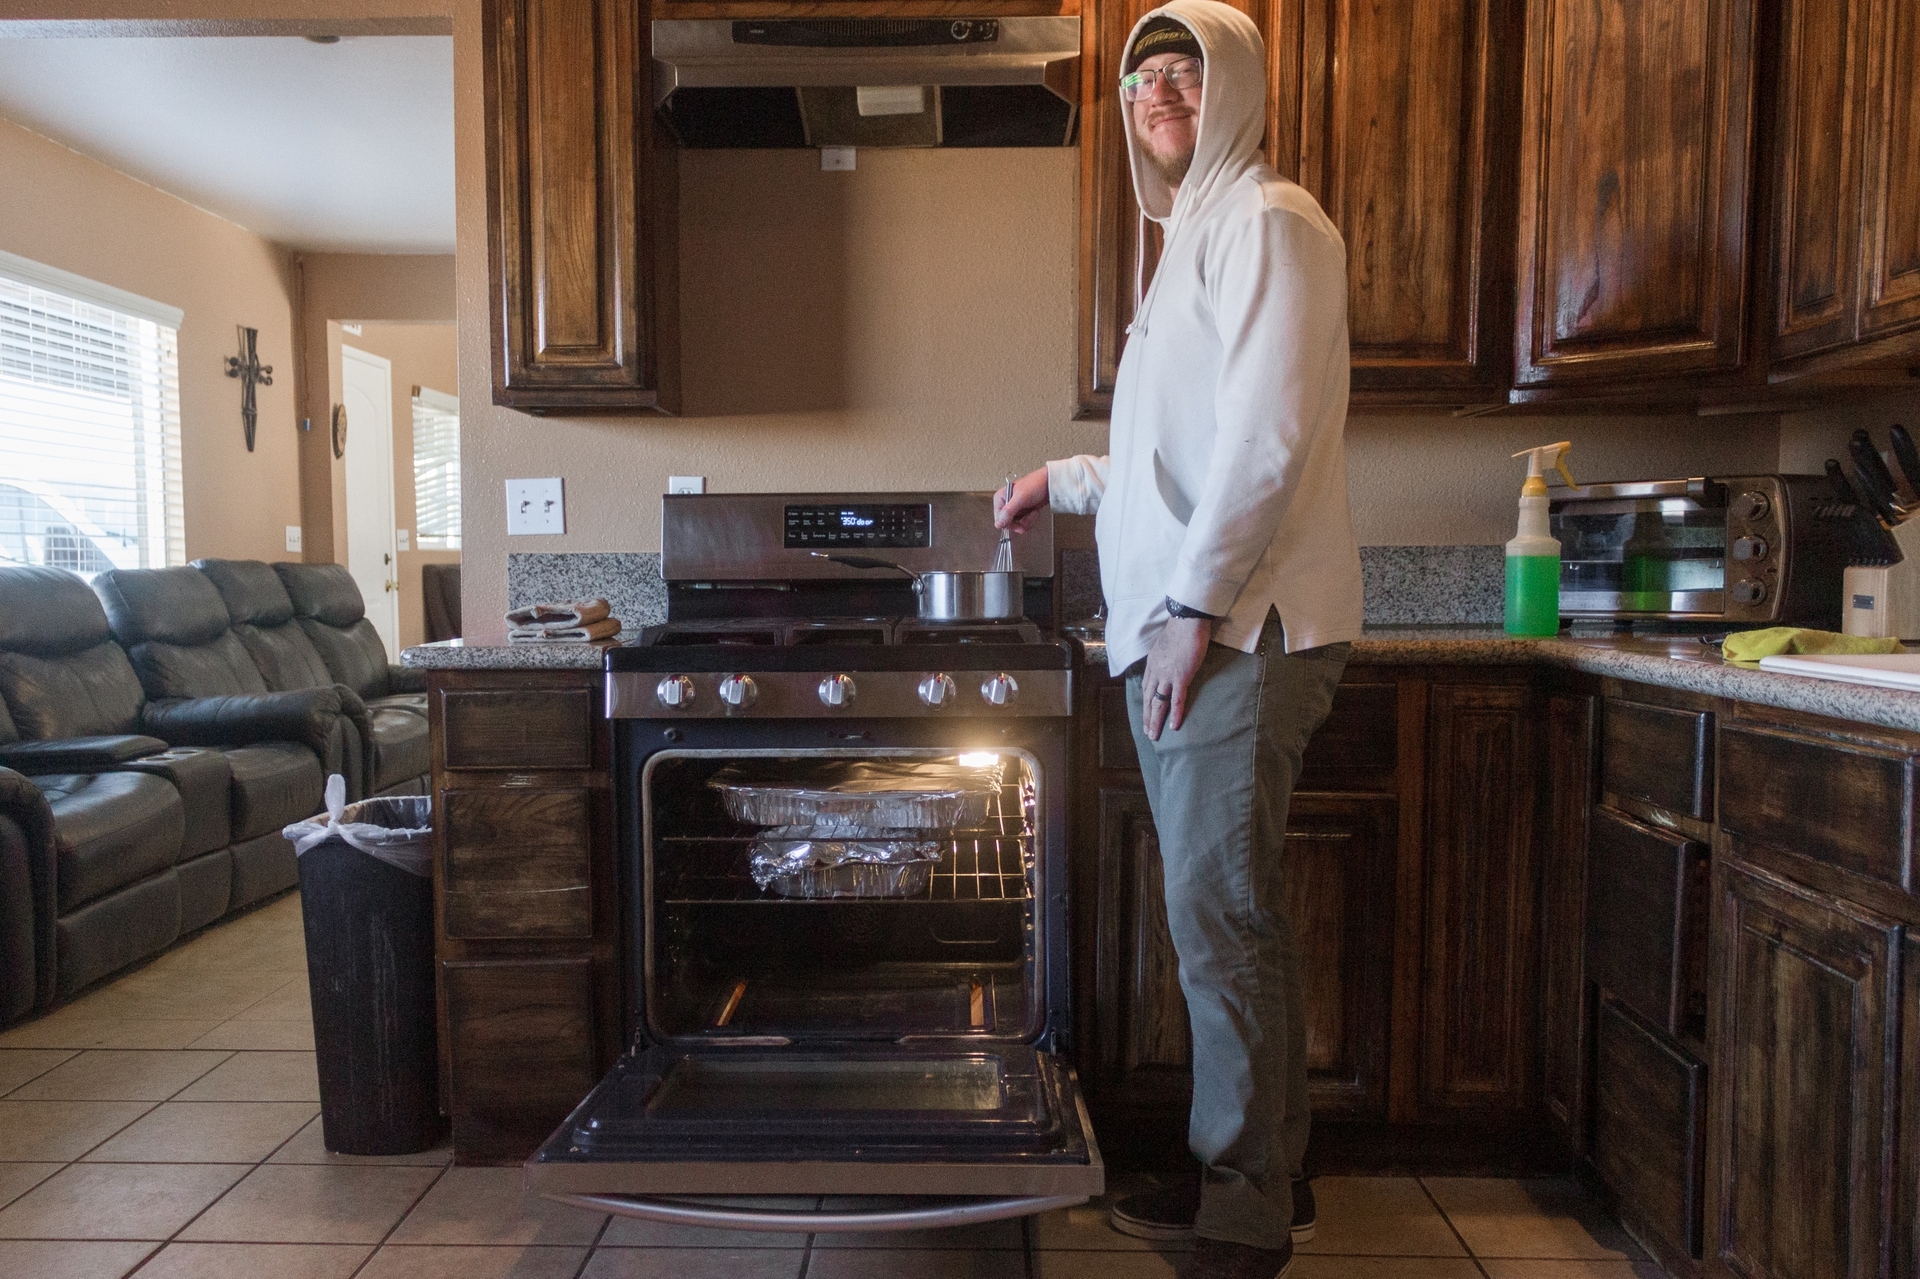 The River's Edge Ranch cook Clint Sambel currently prepares meals three times a day for 30 ranchers  in this kitchen.